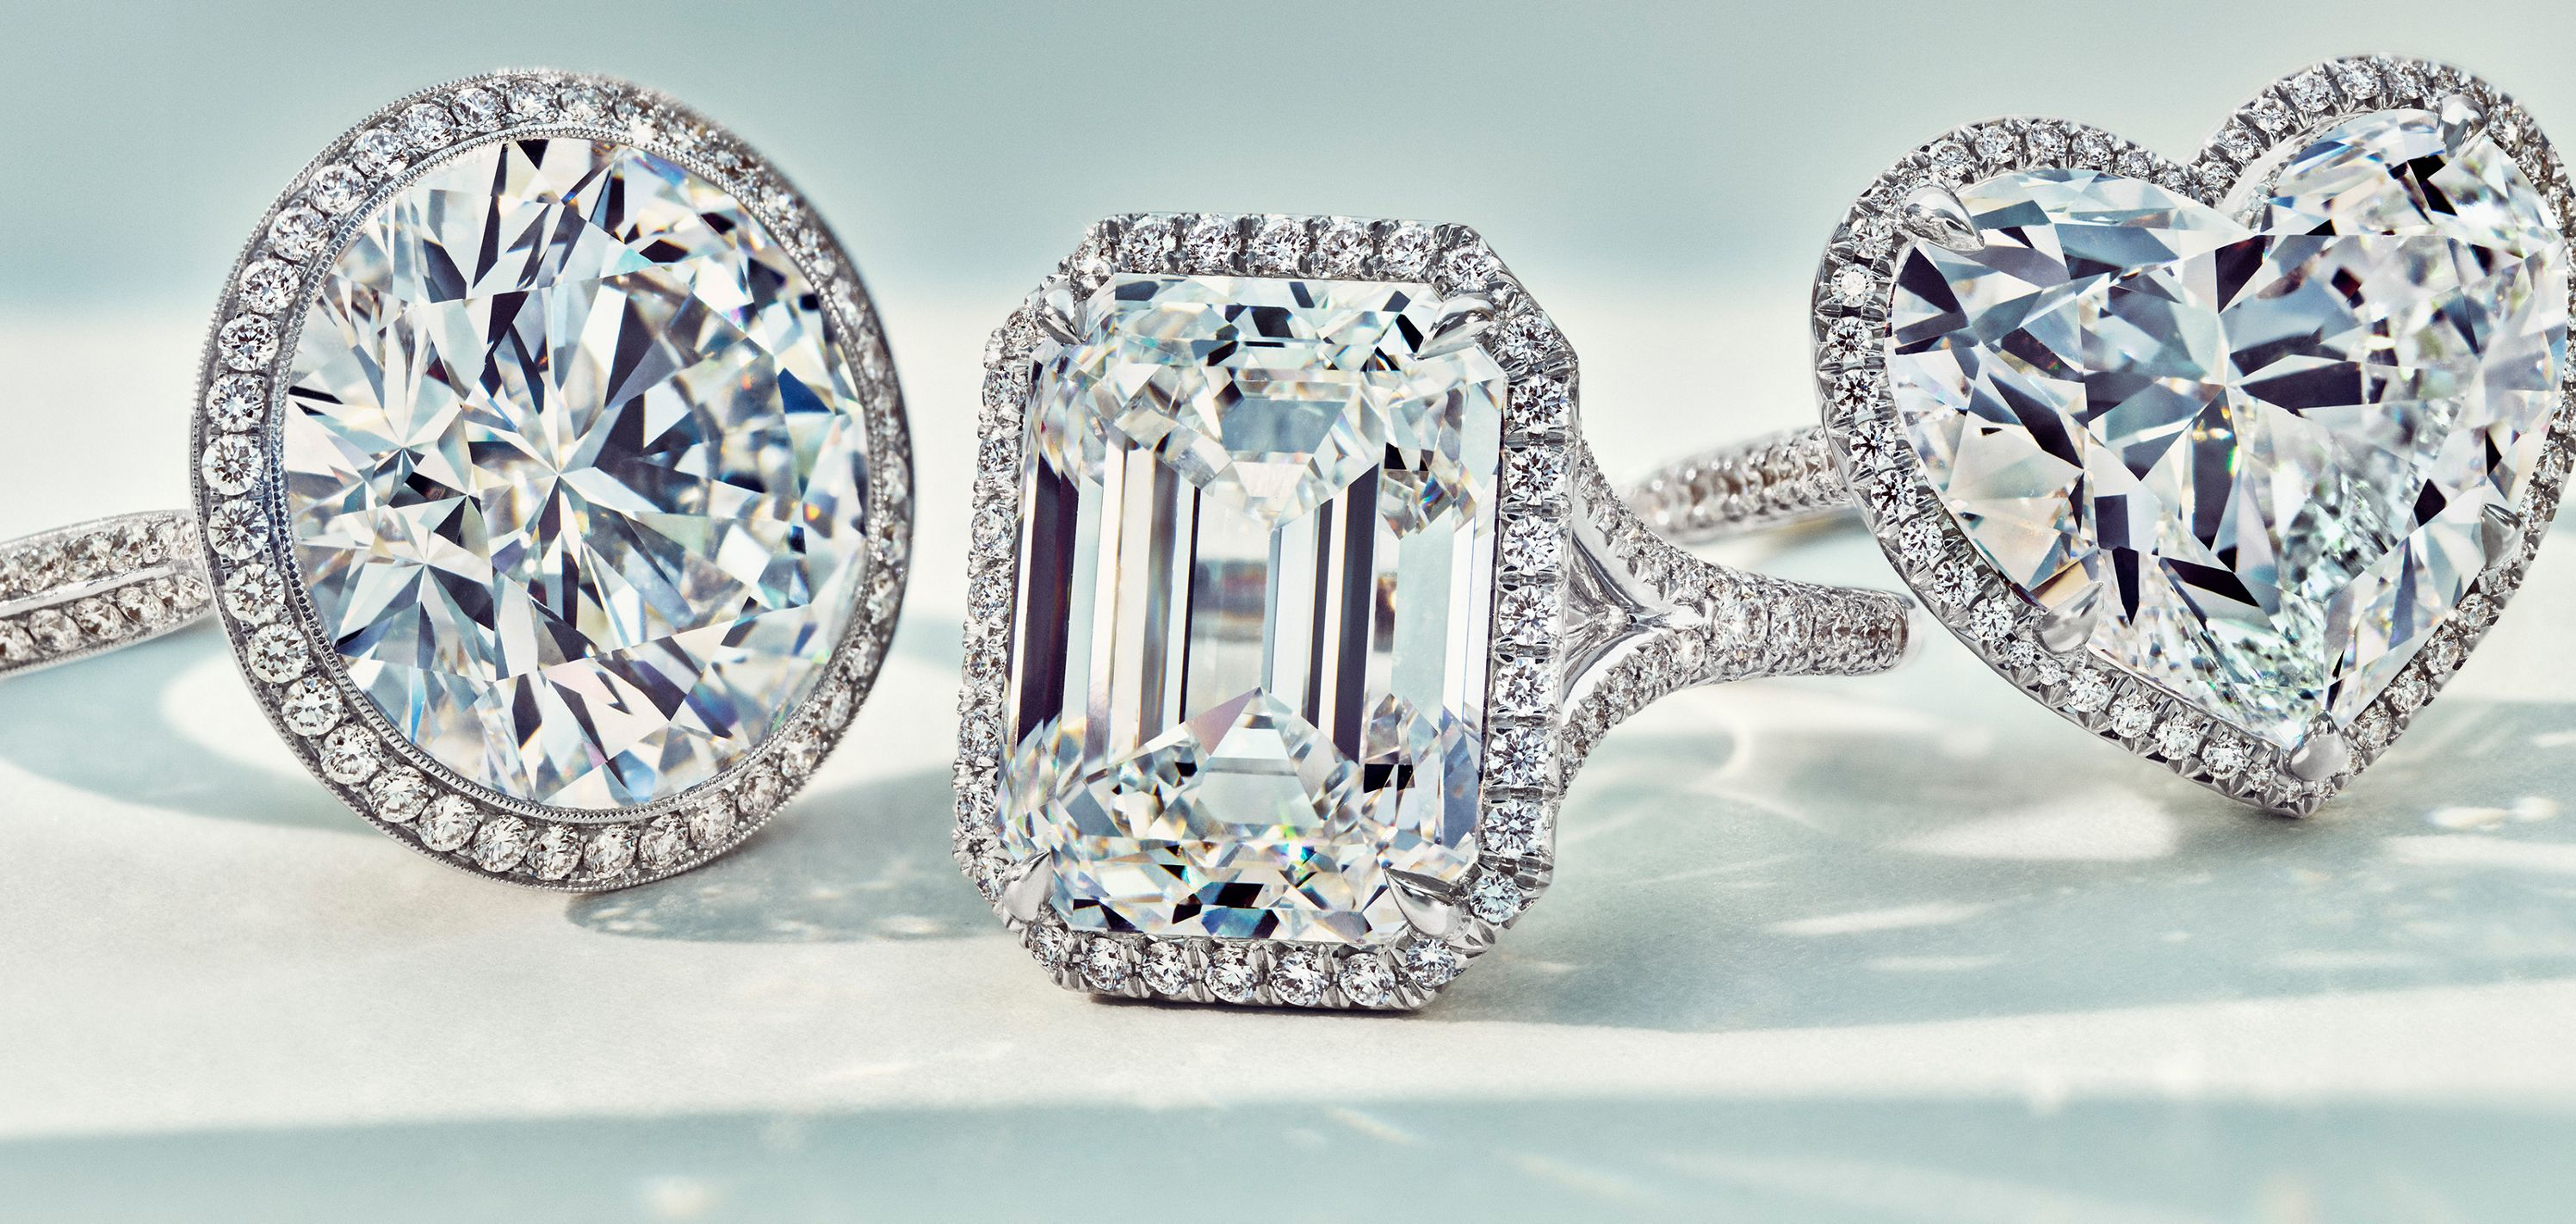 Tiffany & Co. Great White Diamonds